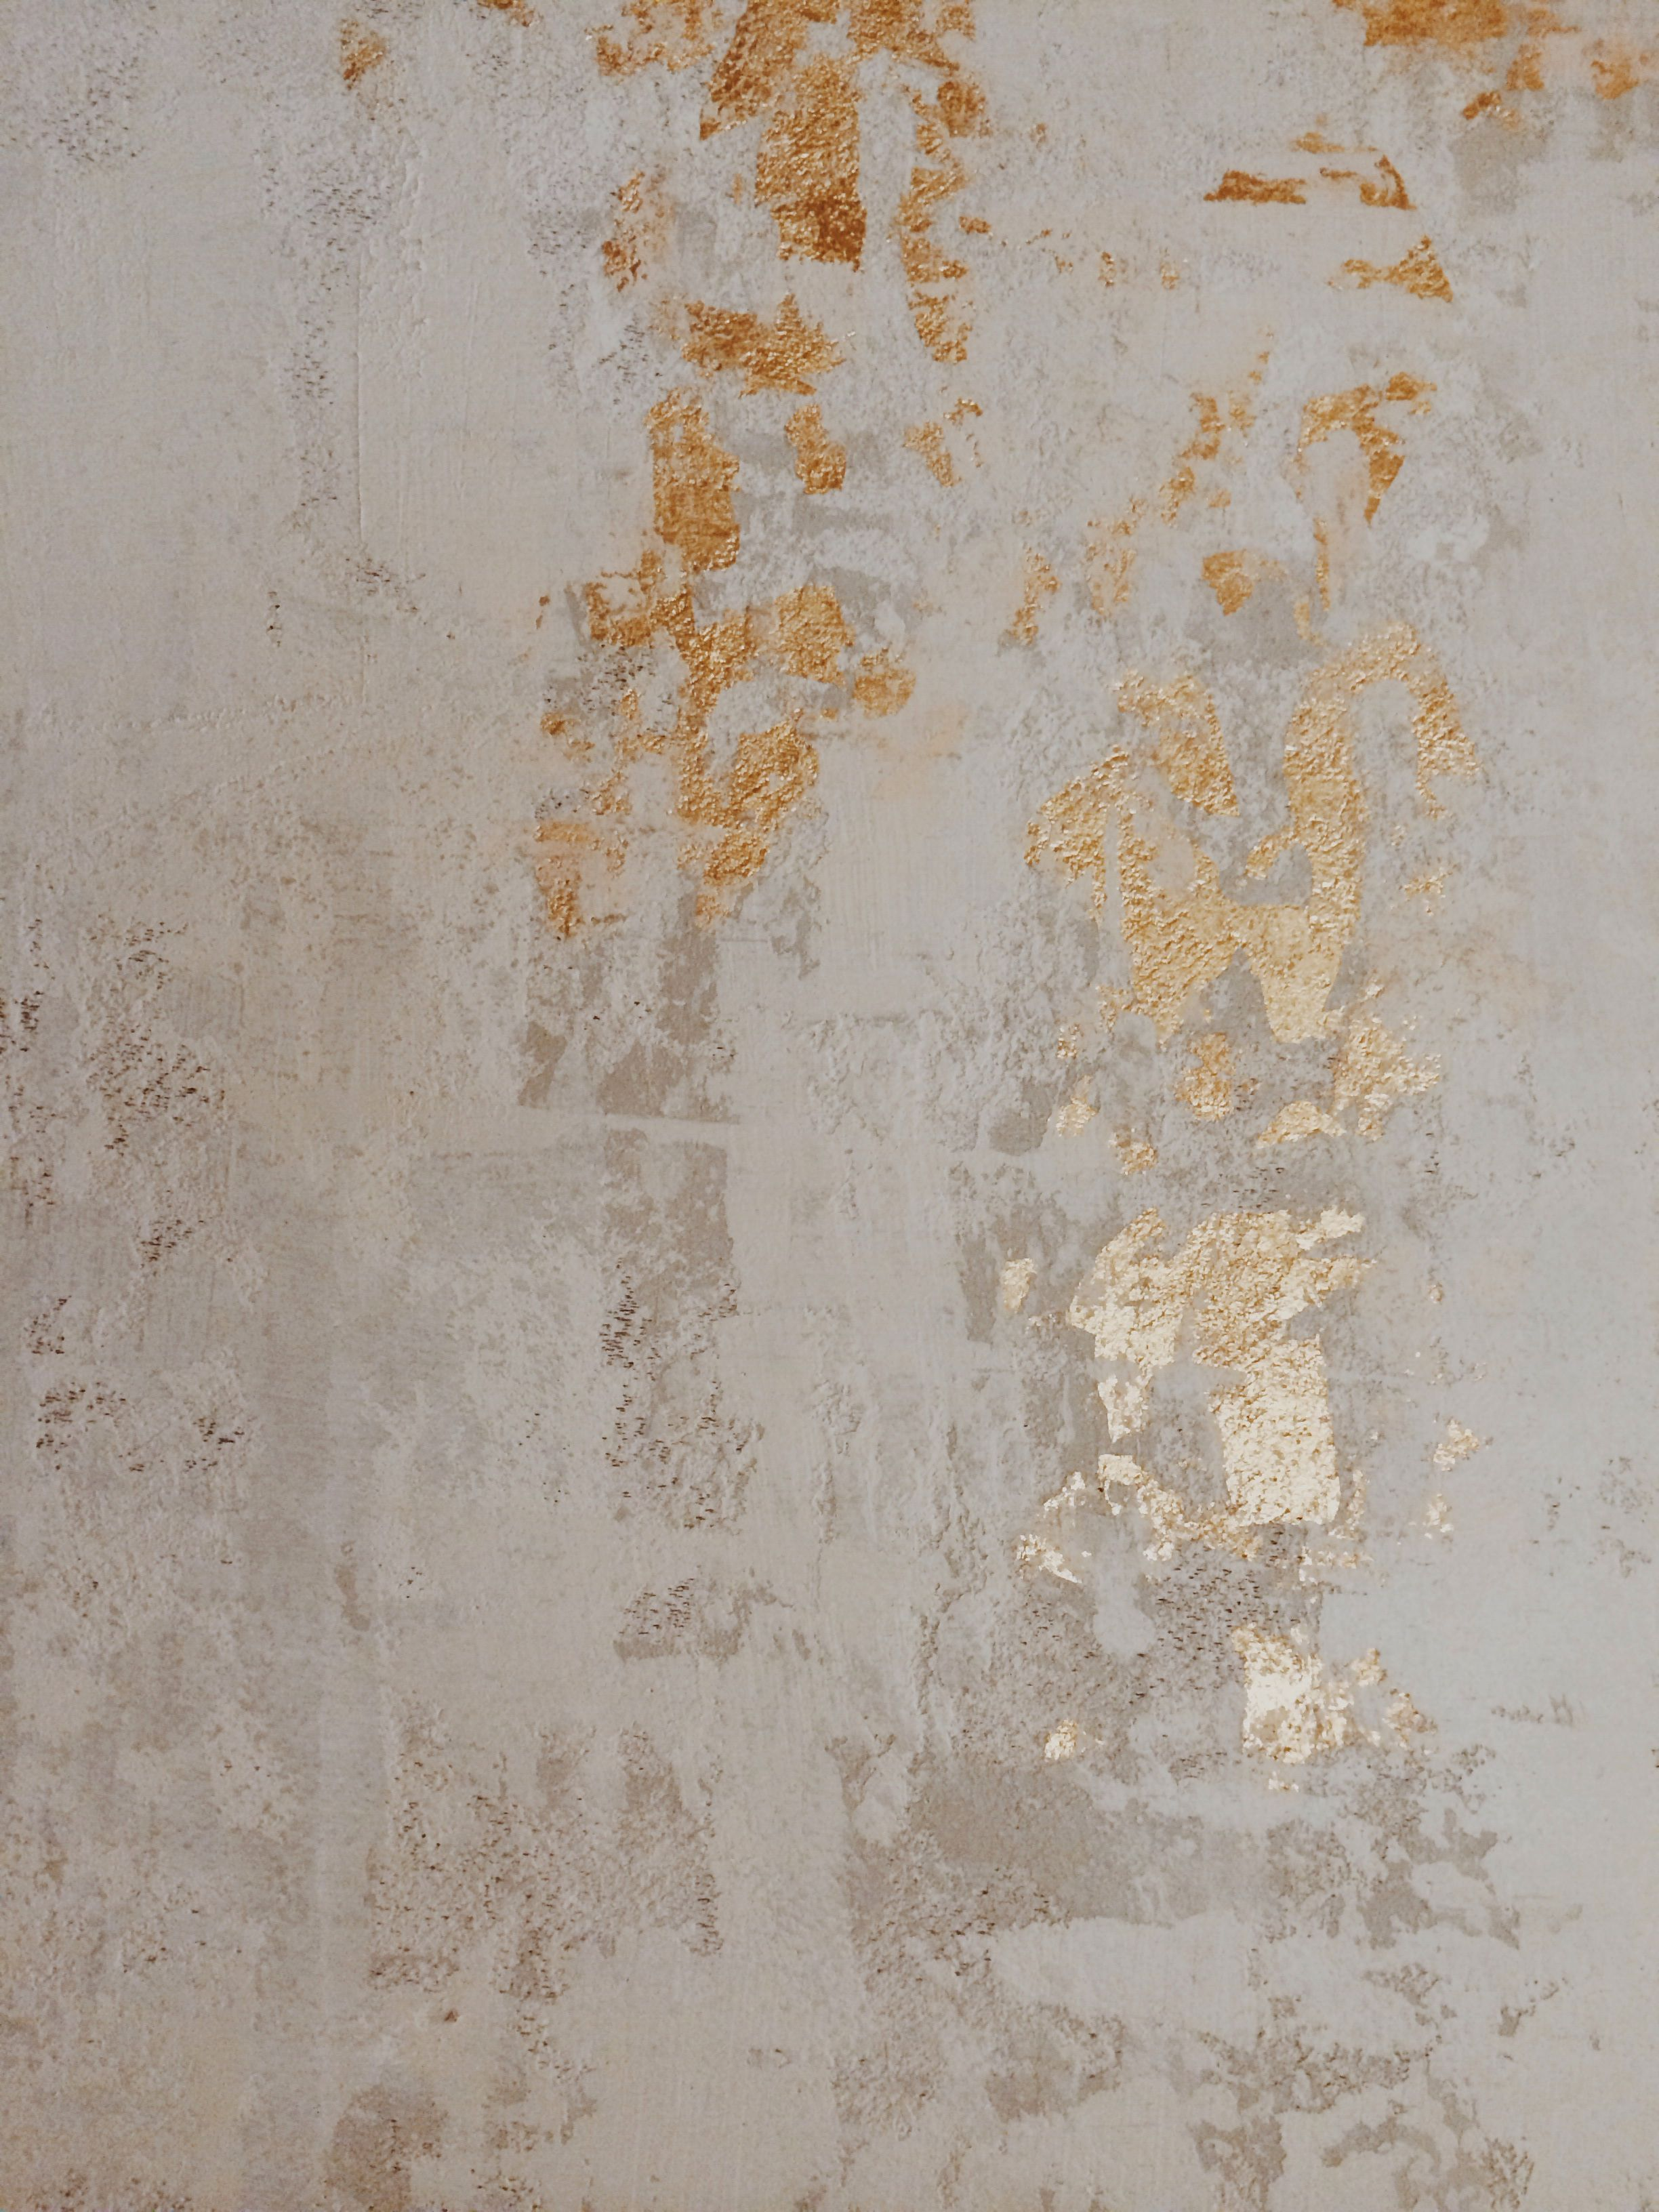 20 Ceiling Texture Types to Know for Dummies (Interior Design) | Interior | Plaster walls ...